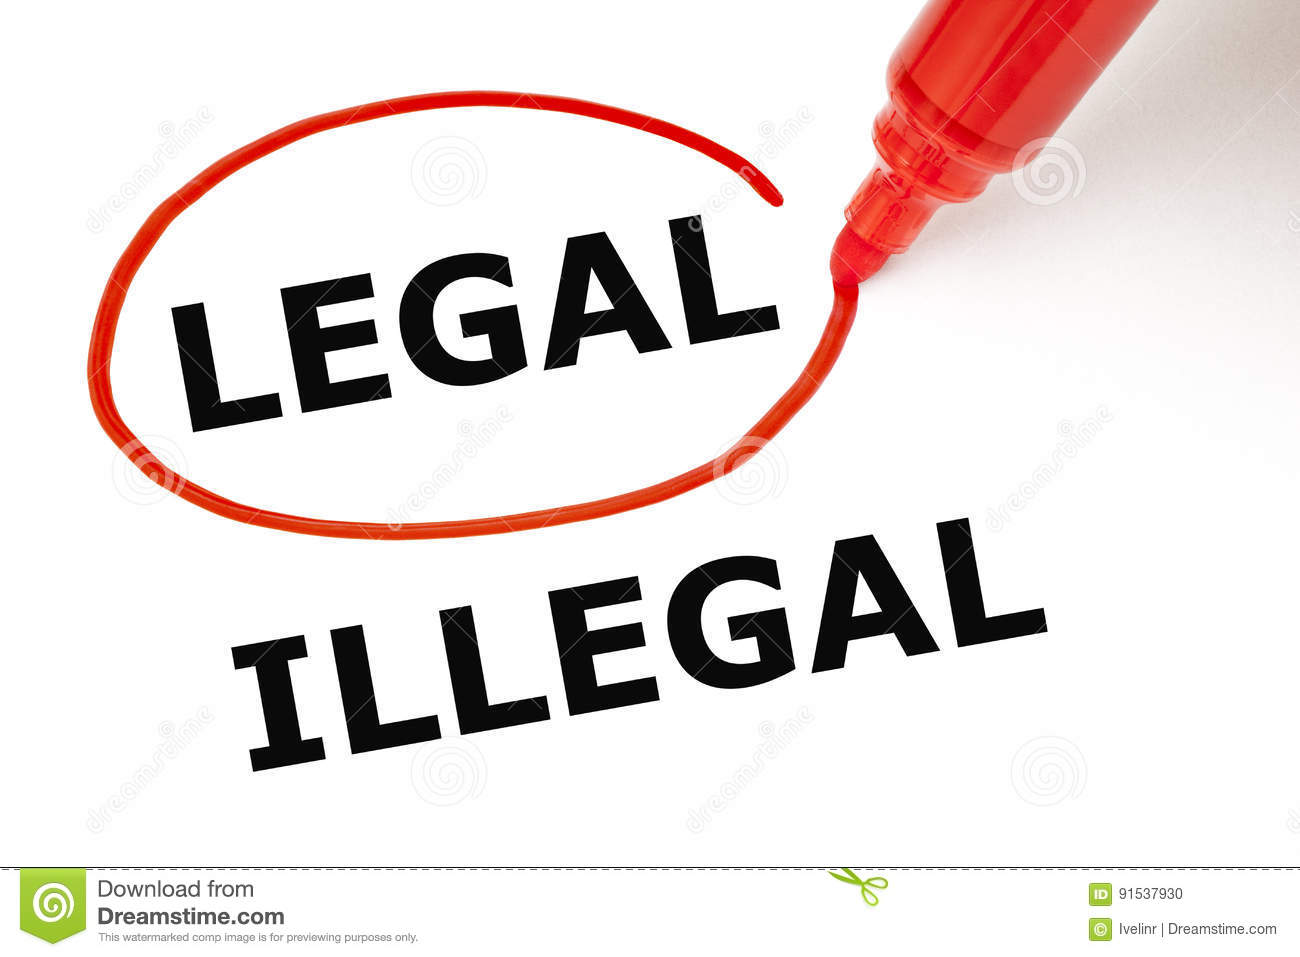 Legal or Illegal with Red Marker